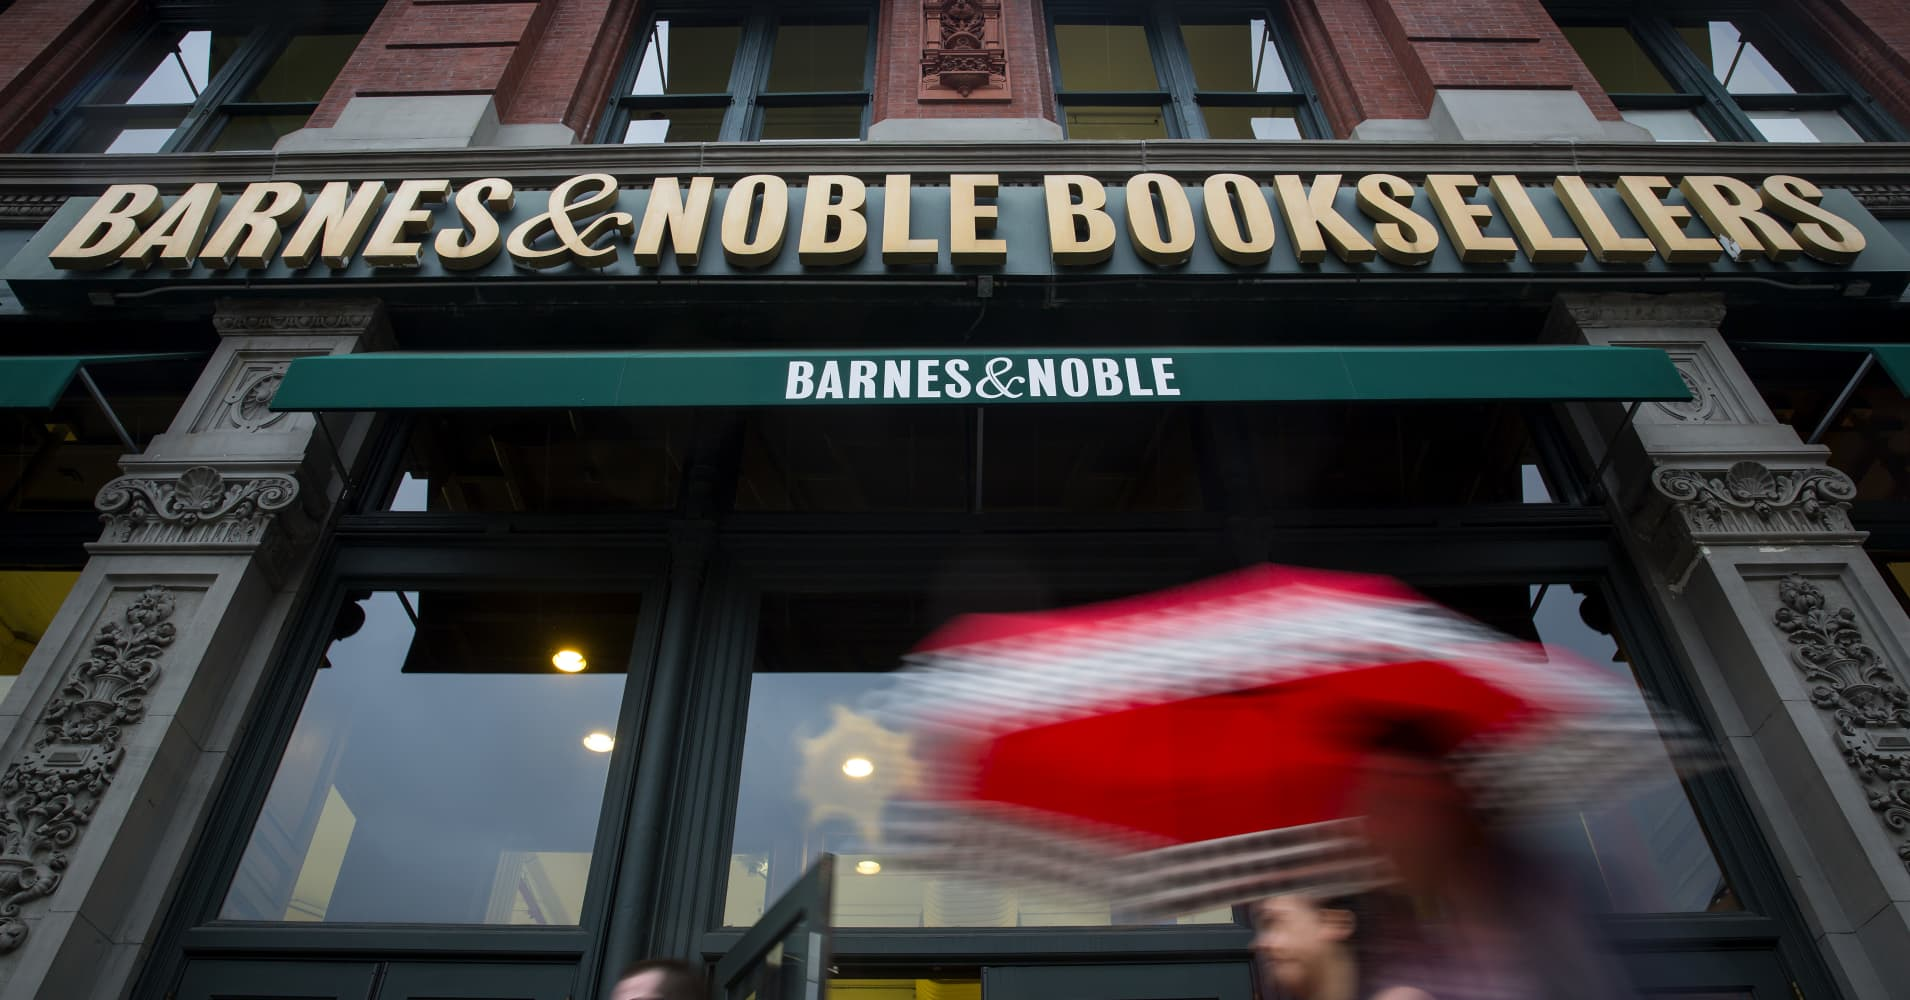 This holiday season could seal Barnes & Noble's fate on barnes 7 noble, advanced search amazon books, barnes & noble town center, barnes & noble collectible editions series, barnes & noble book search, barnes & noble's, barnes & noble booksellers, barnes noble classics series, barnes a noble, barnes noble printable, green eggs and ham dr. seuss books, barnes & noble bookfair, out of print books, barnes & noble tote bags, b. dalton books, barnes and nobel, barnes & noble college, barnes and barnes, barnes noble book find,